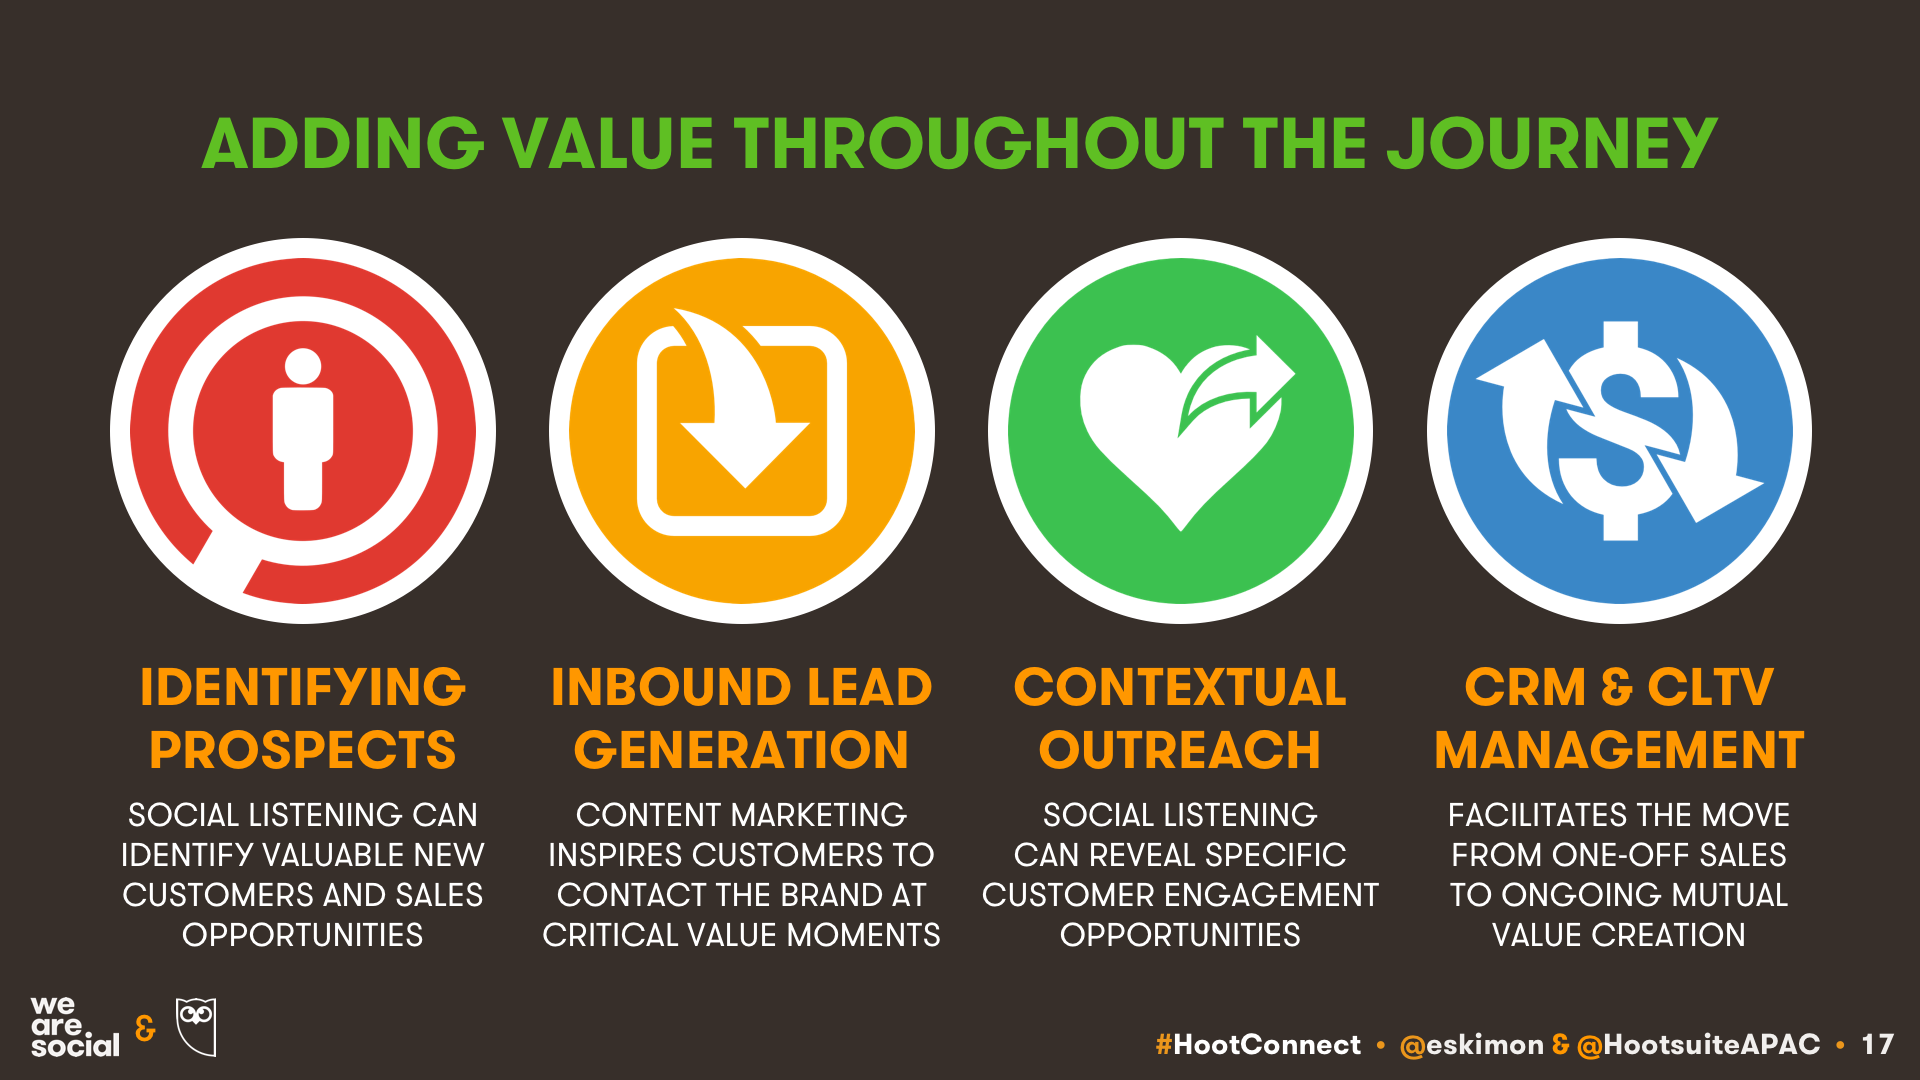 KEPIOS: SOCIAL SELLING ADDS VALUE THROUGHOUT THE BUYER JOURNEY